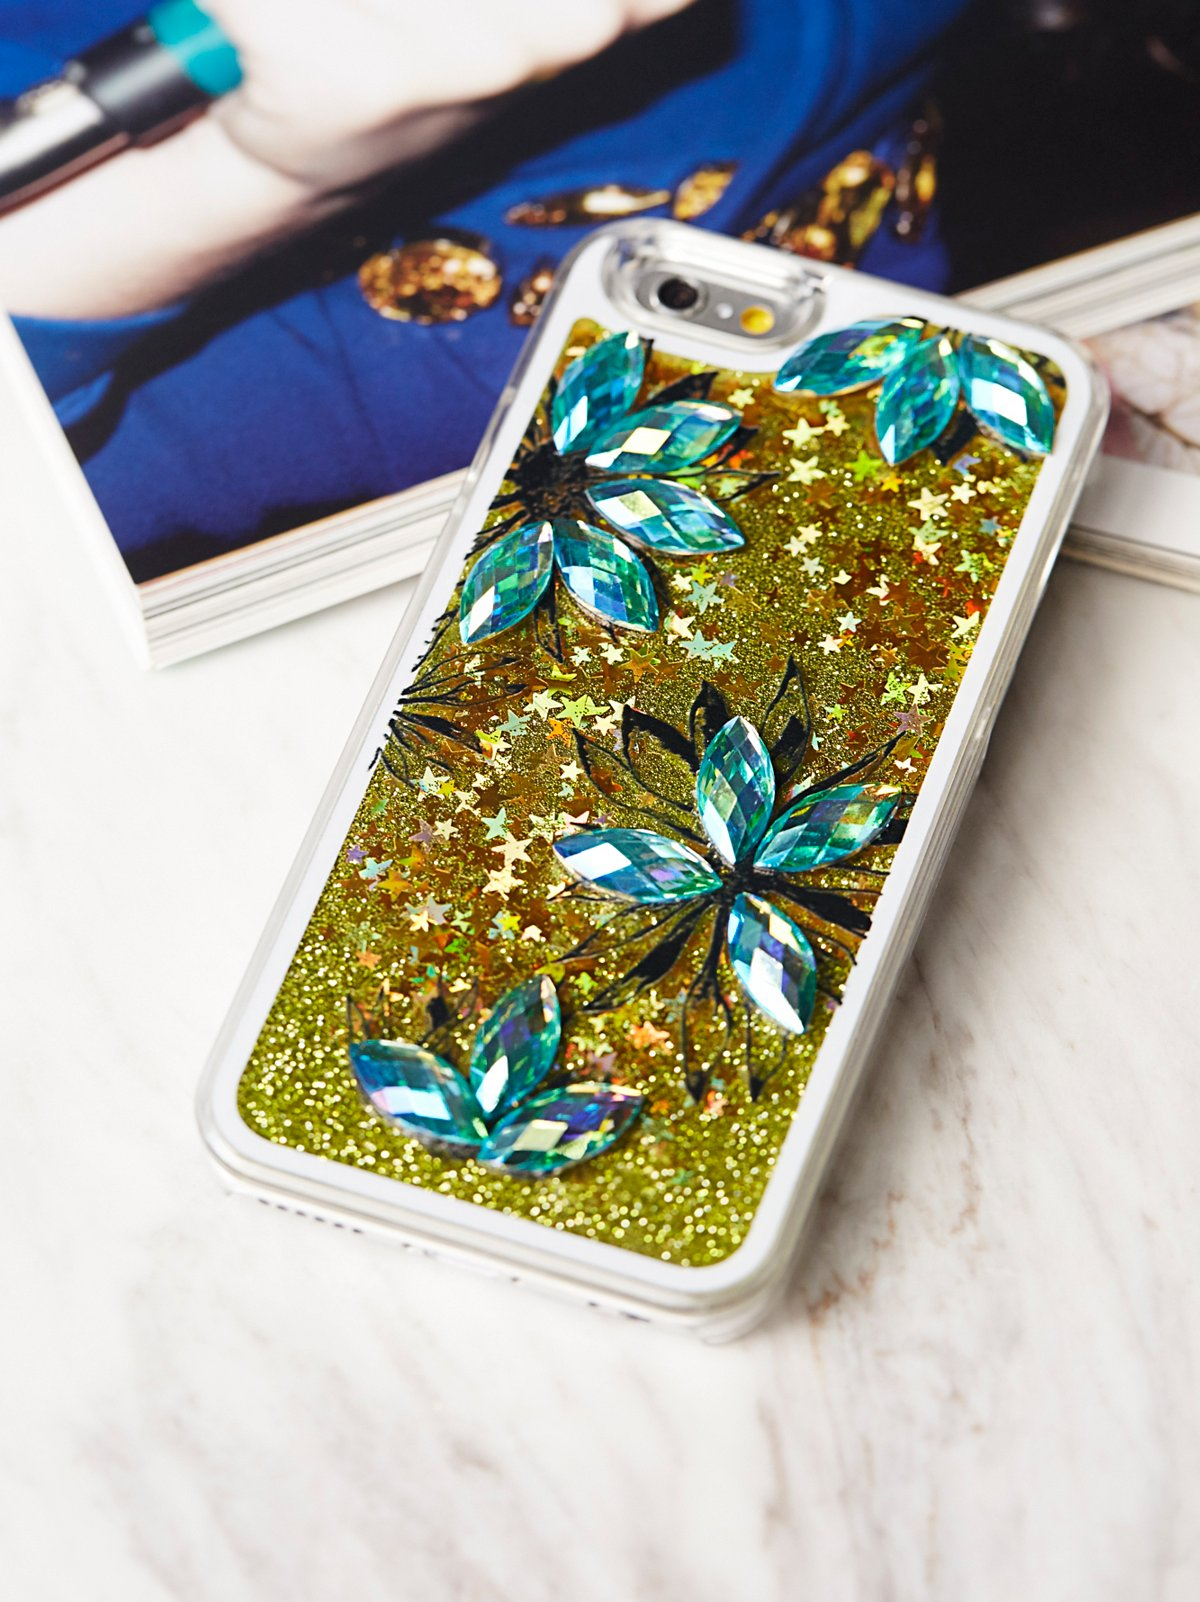 Interstellar Storm Liquid Glitter iPhone Case